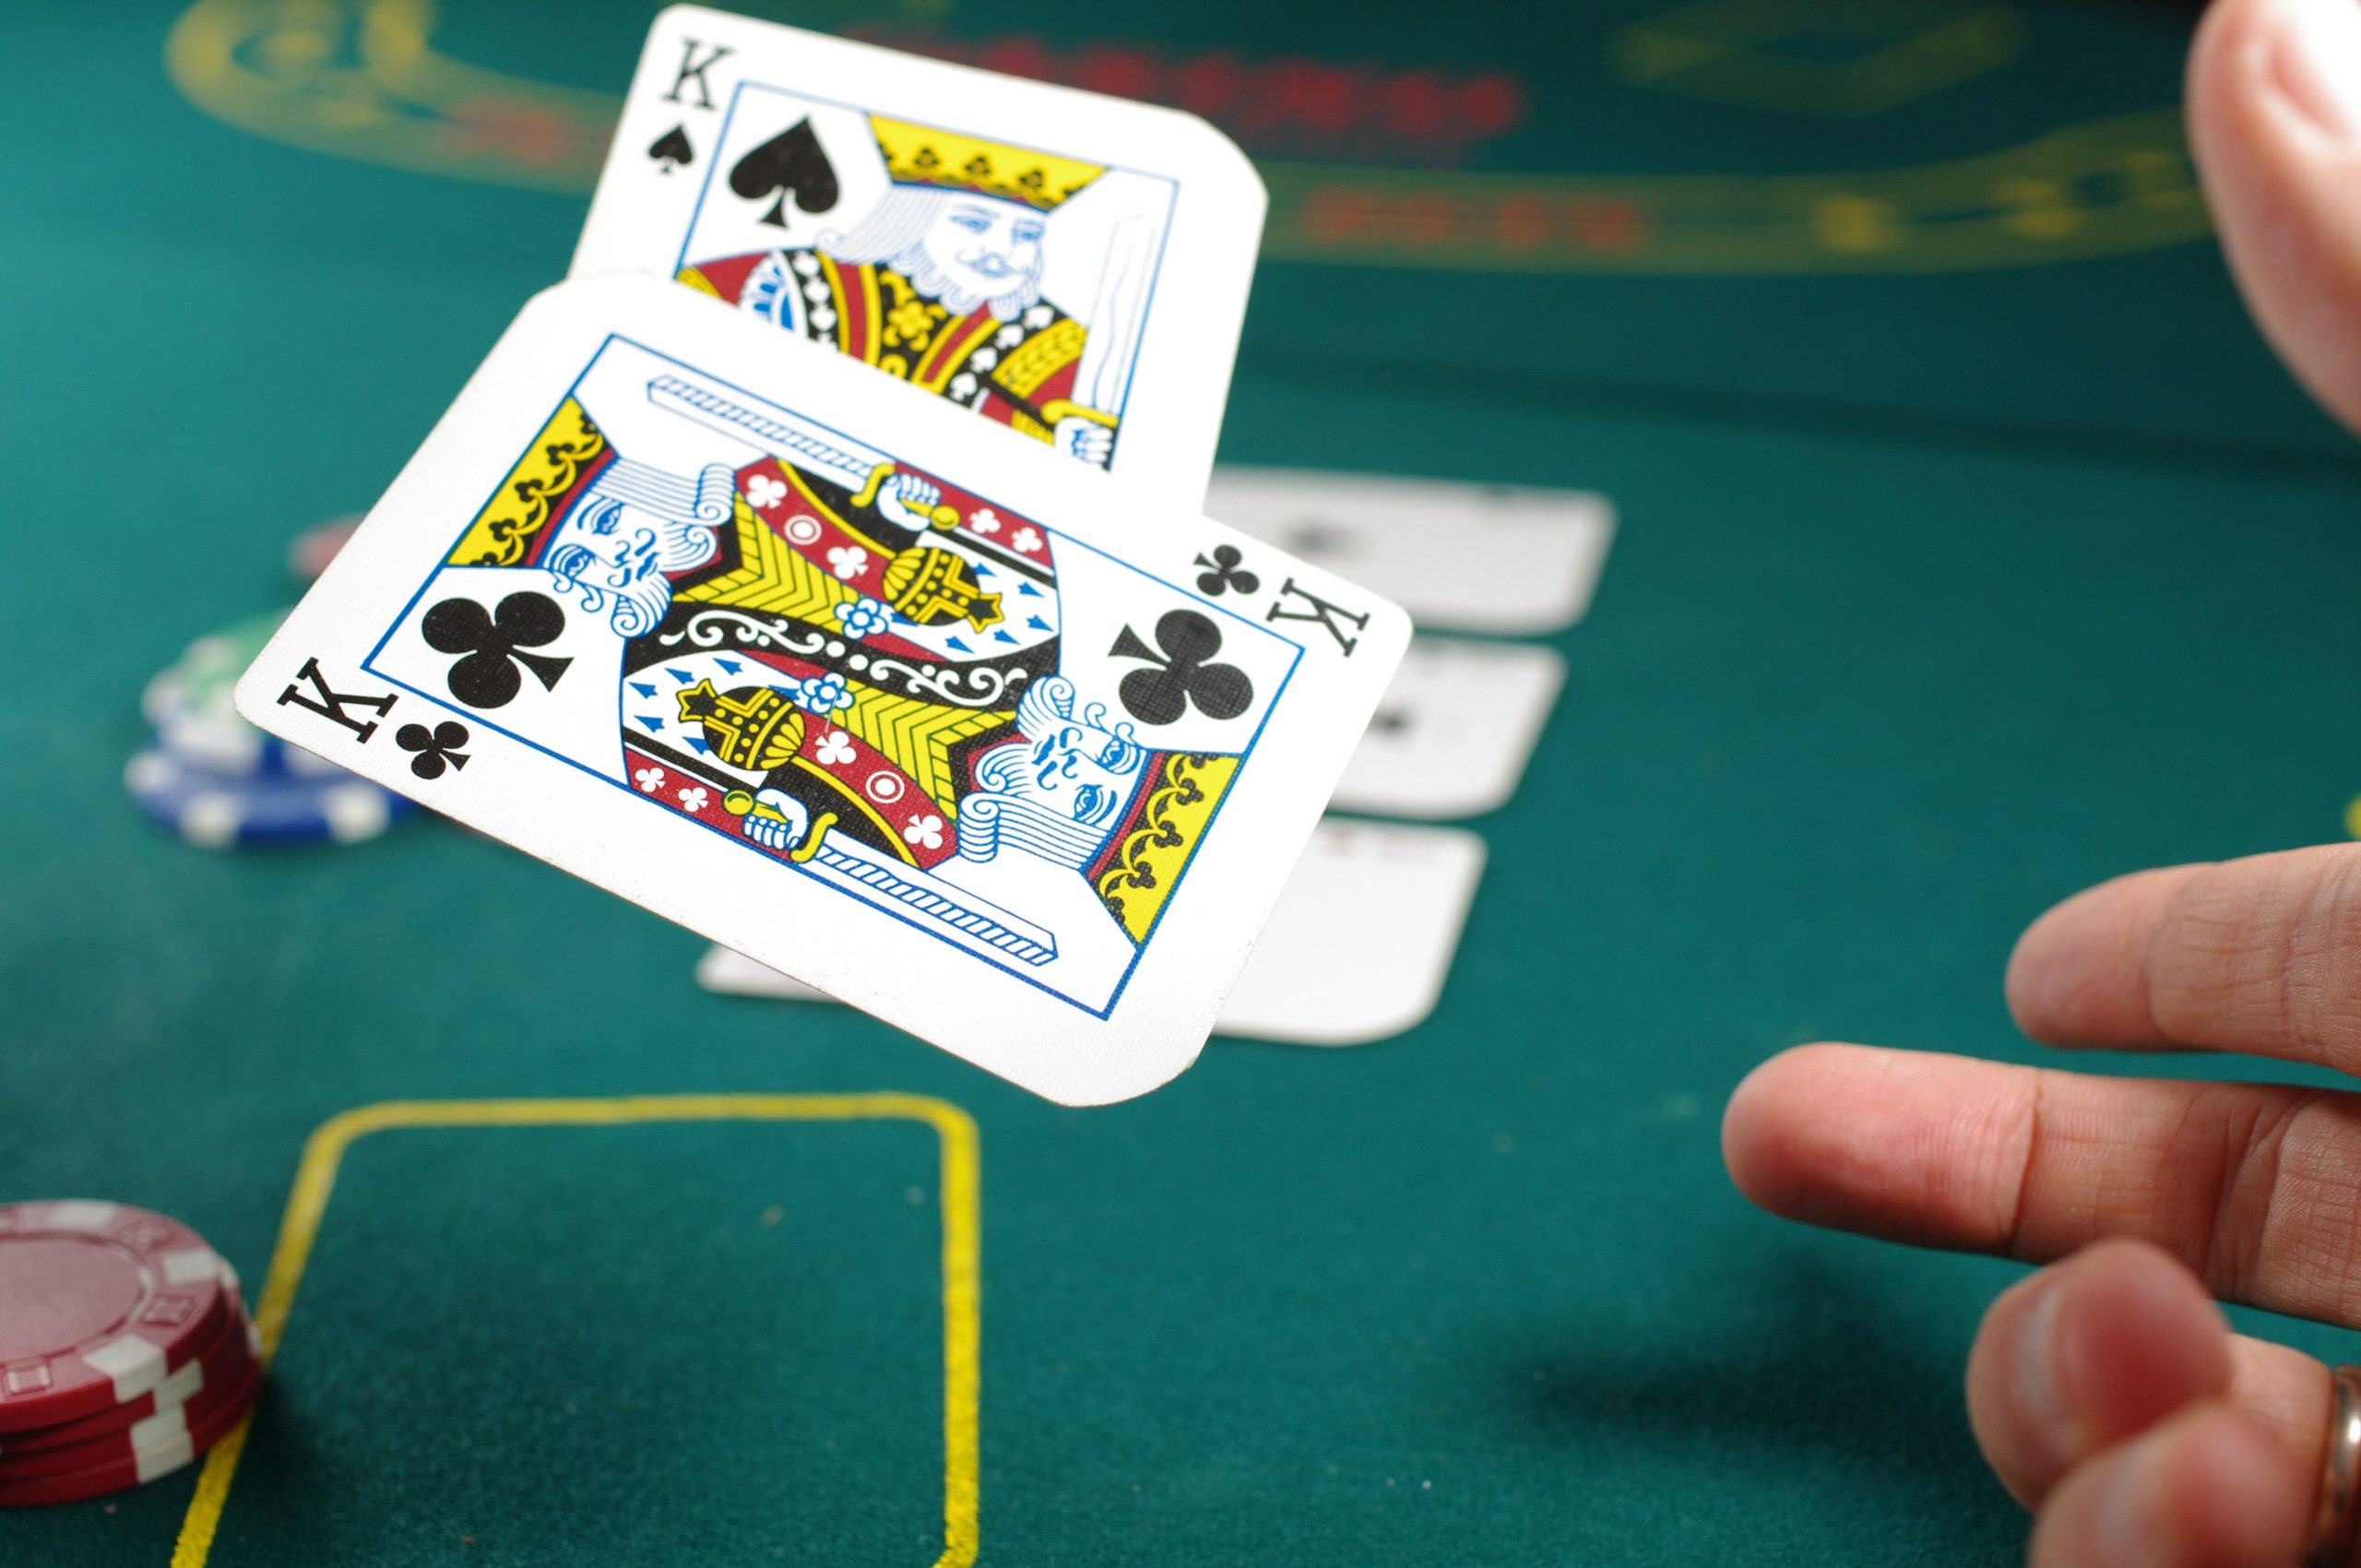 Qq poker online – Easy To Understand And Wise To Place Bets!